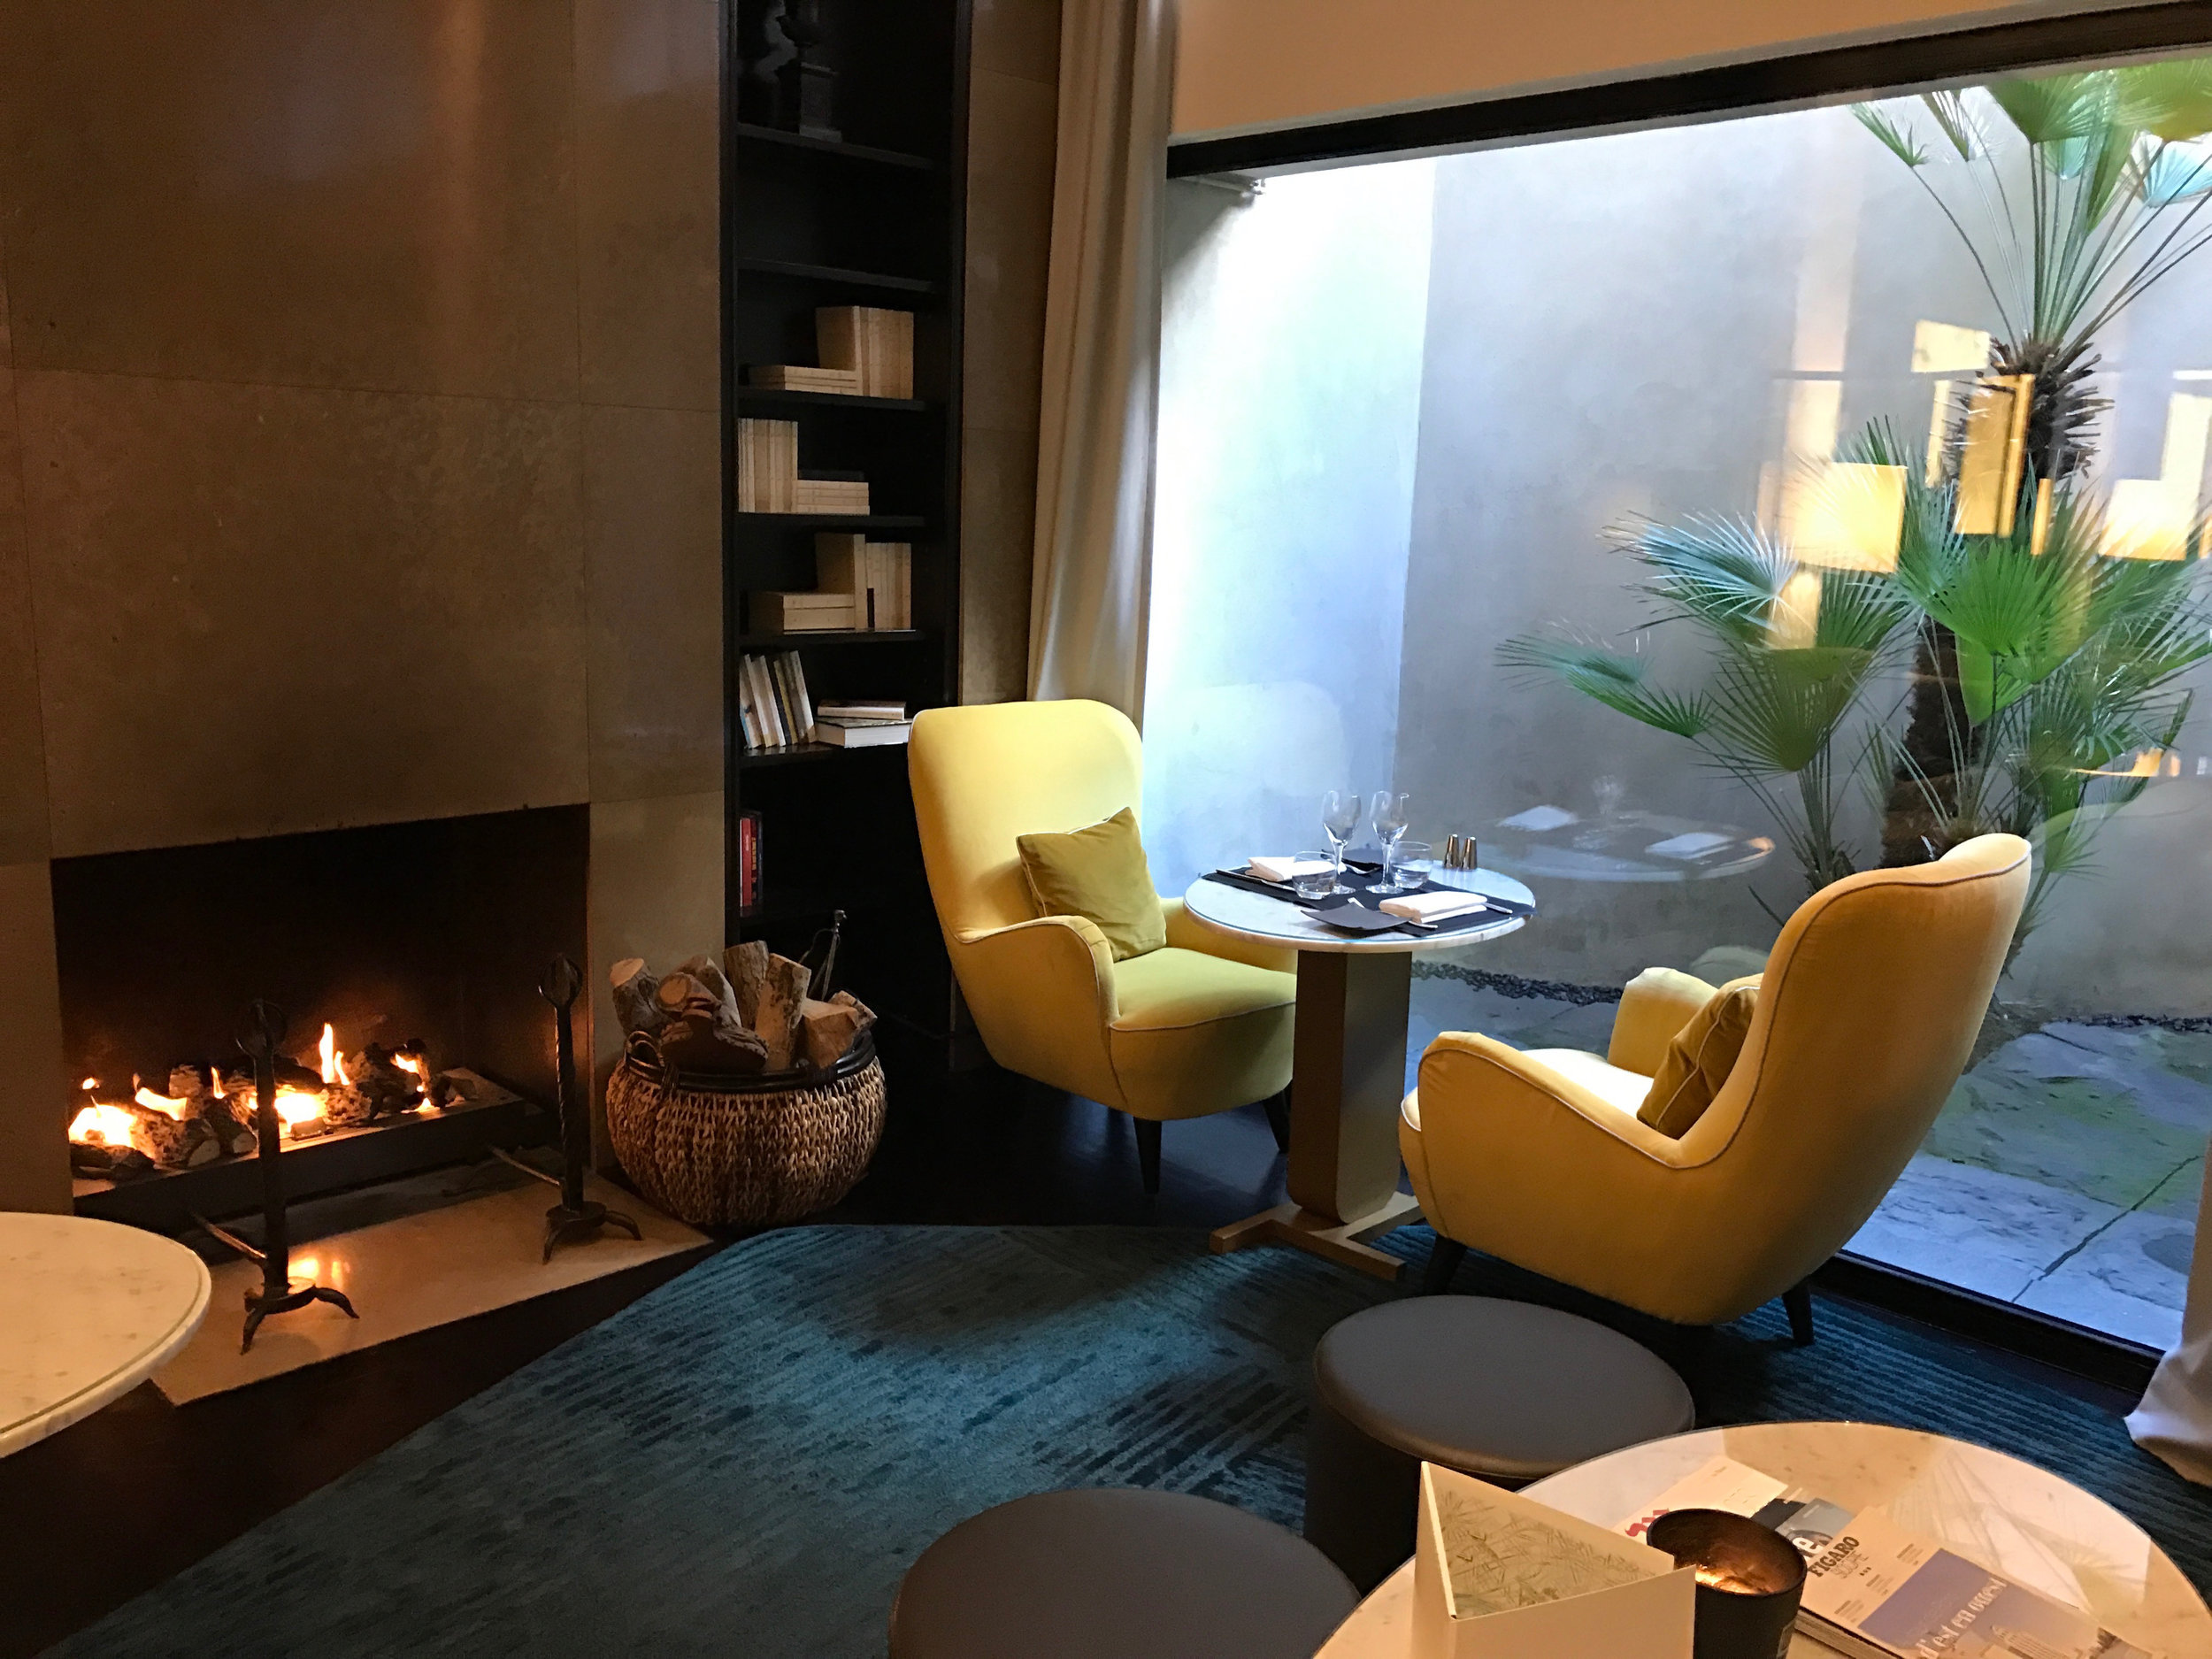 Relax at the fireplace at a Preferred Hotel